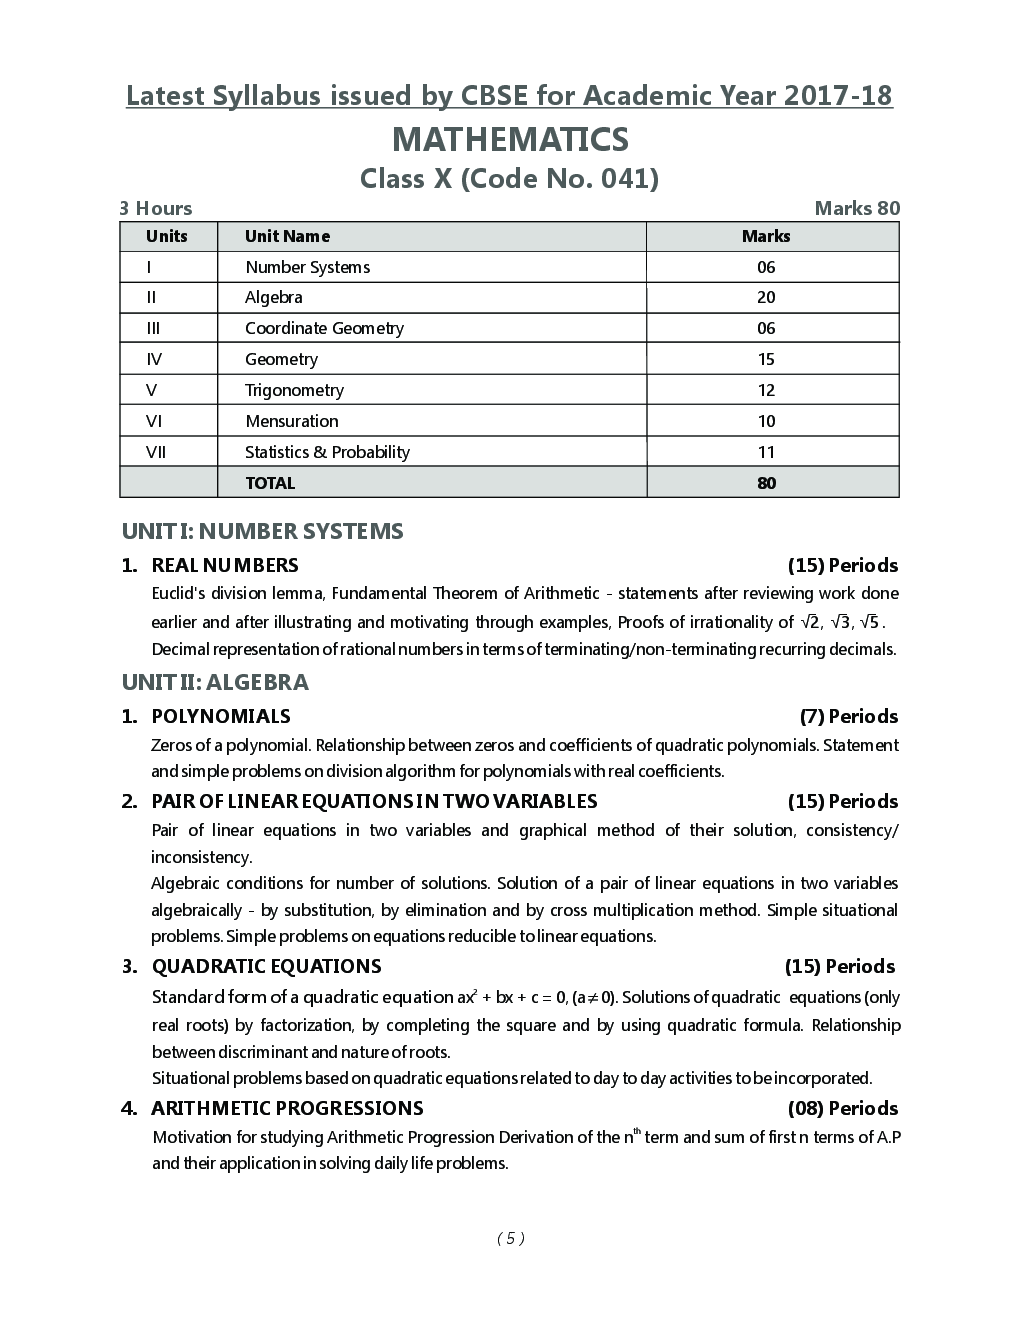 Oswaal cbse sample question papers class x maths mar 2018 exam by oswaal cbse sample question papers class x maths mar 2018 exam by panel of experts fandeluxe Choice Image